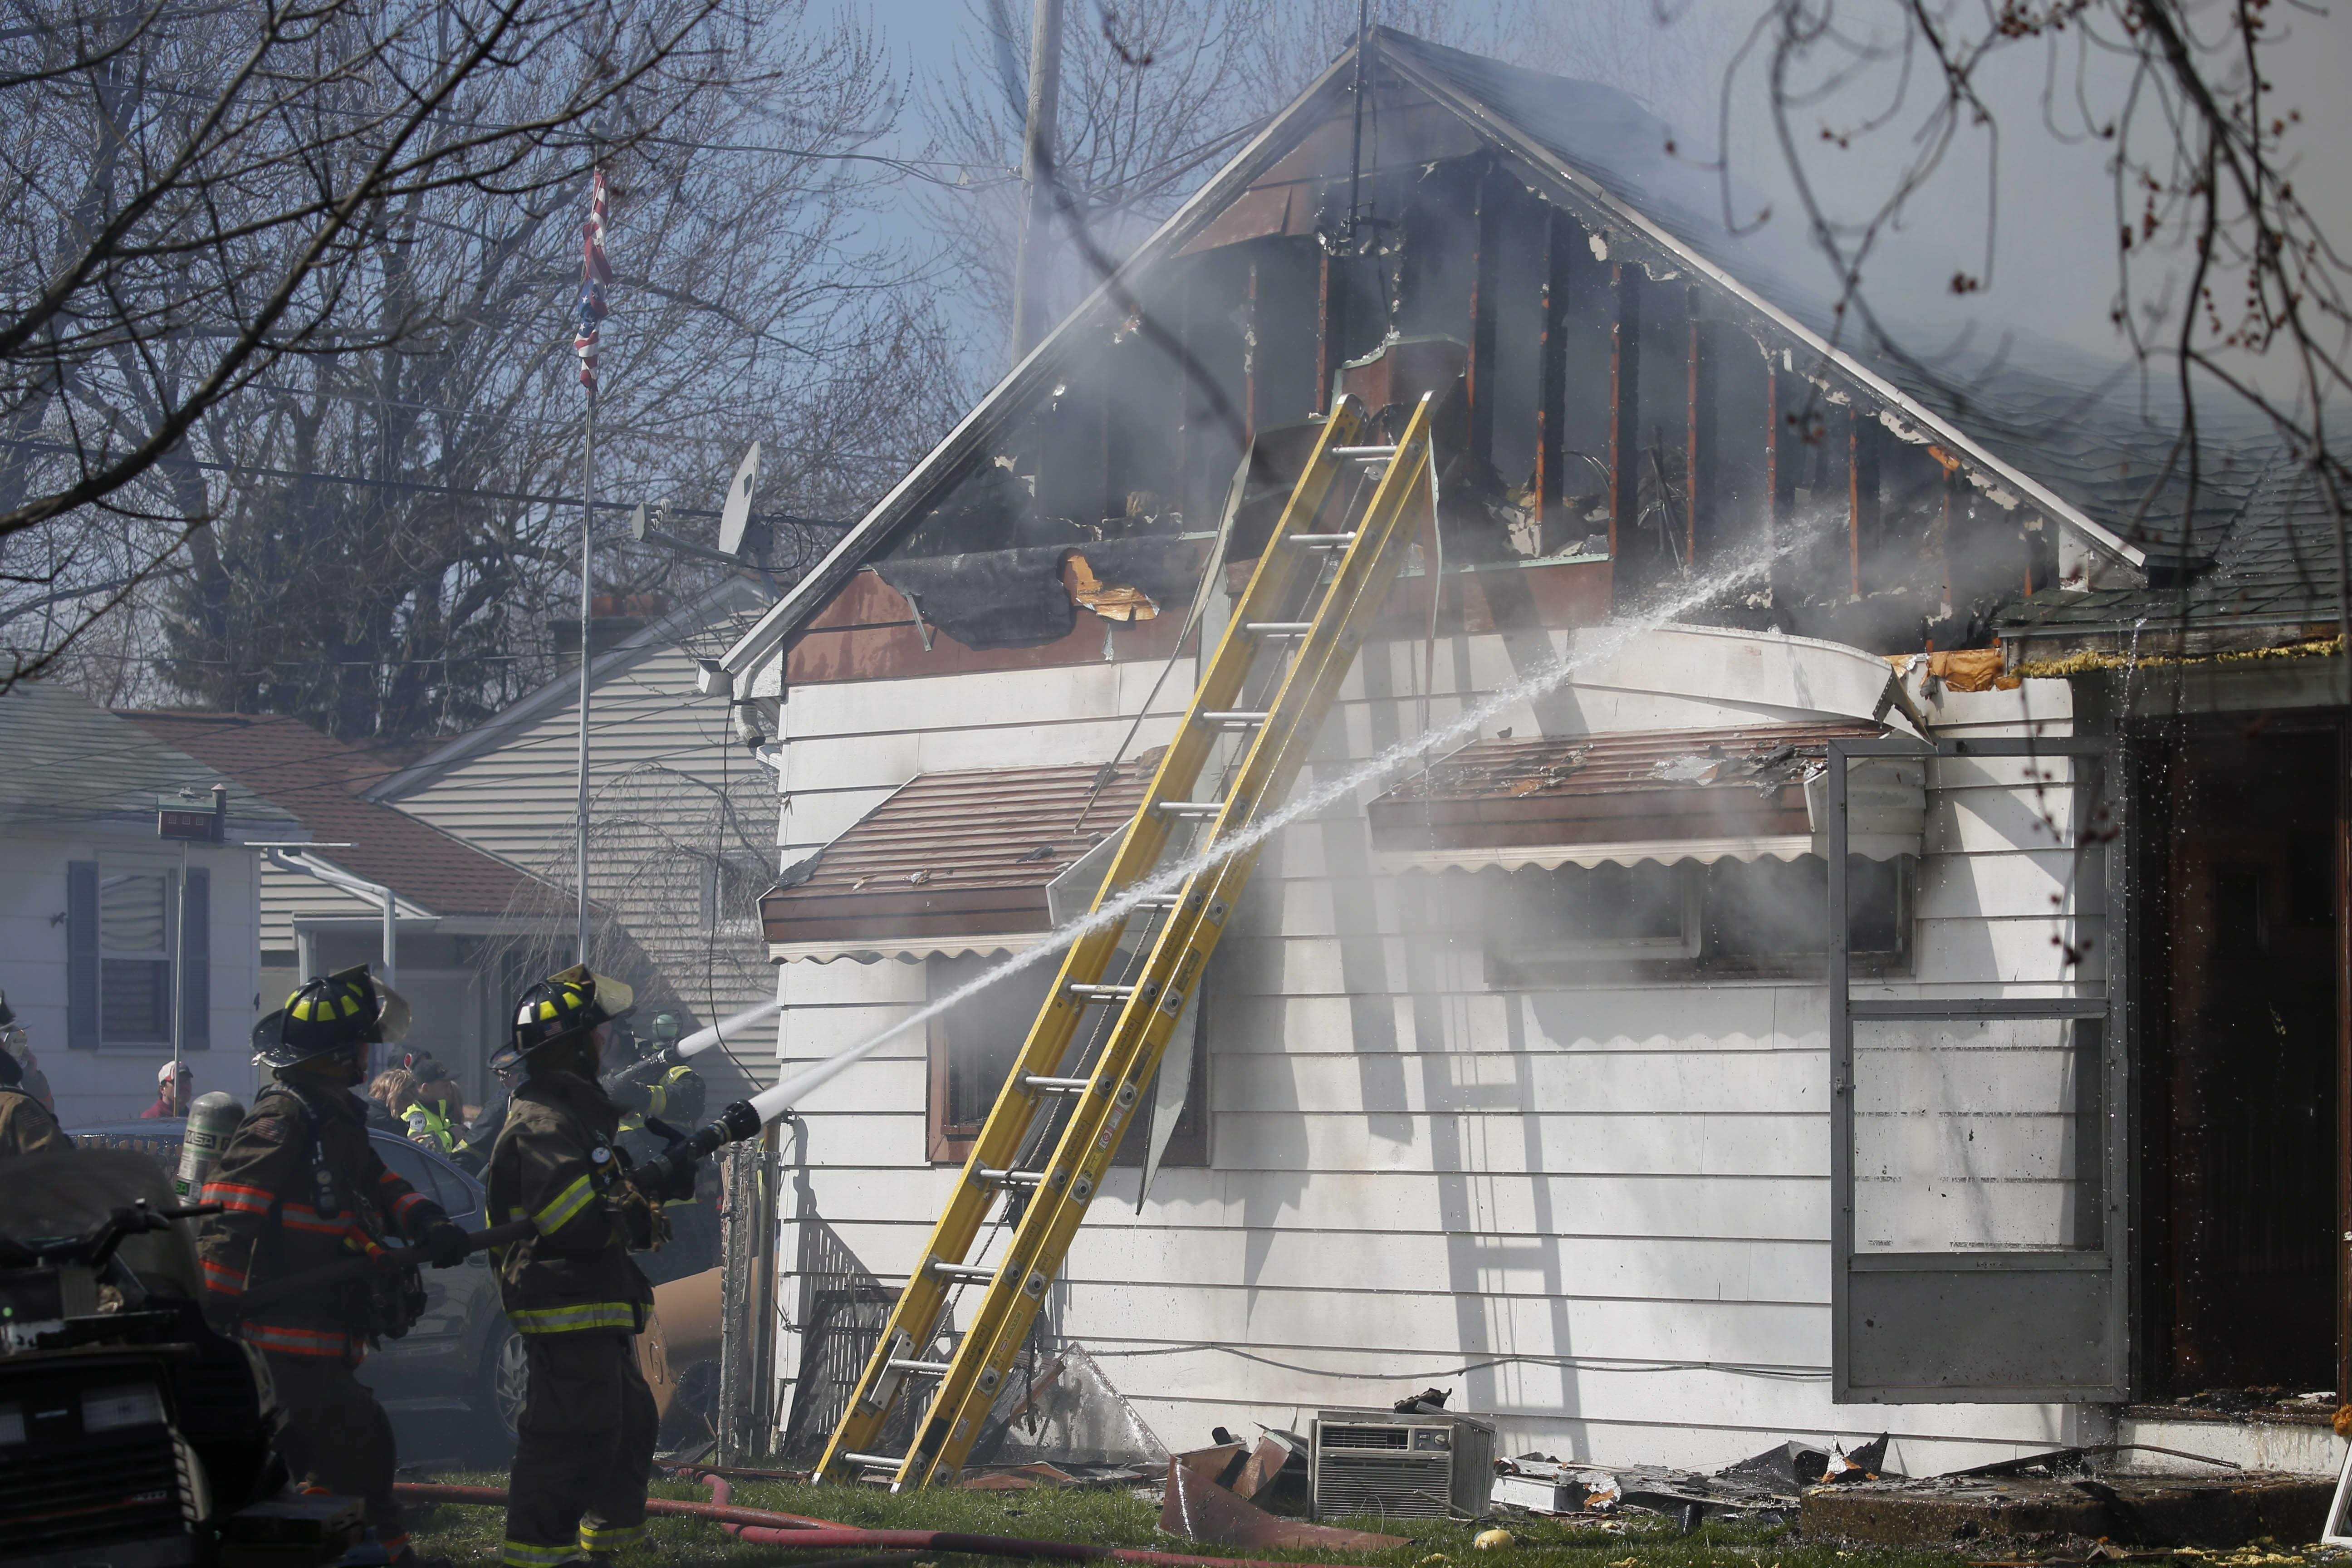 Firefighters work to contain a fire in an occupied home on Brookhaven Drive in Cheektowaga on Saturday, April 9, 2016.  (Derek Gee/Buffalo News)